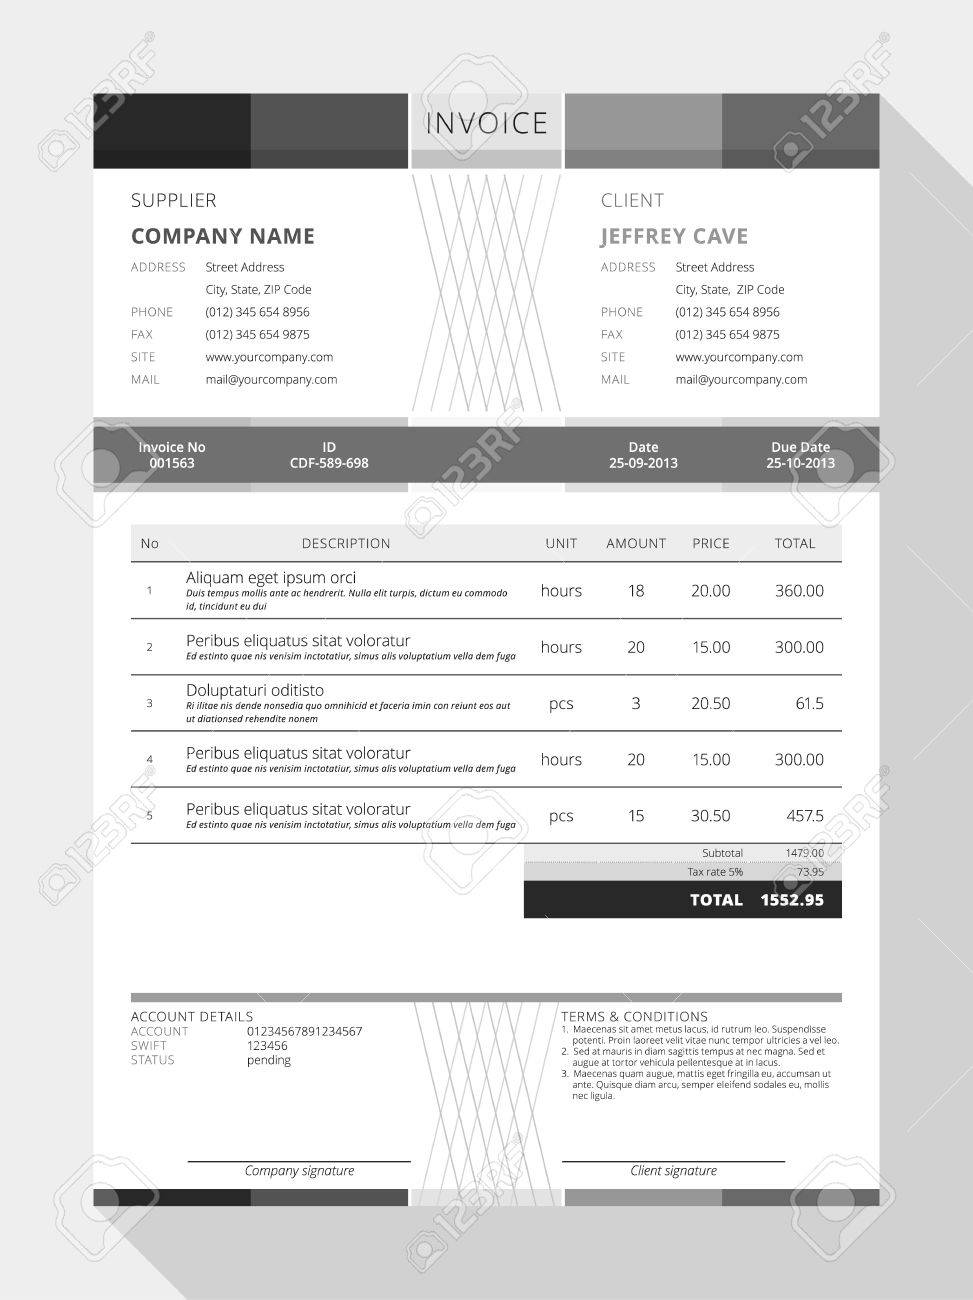 Angkajituus  Sweet Design An Invoice  Professional Graphic Design Invoice  With Entrancing Vector Customizable Invoice Form Template Design Vector   Design An Invoice With Enchanting Vehicle Factory Invoice Also When To Invoice A Customer In Addition Lawn Invoice And What Is A Tax Invoice Australia As Well As Fake Paypal Invoice Generator Additionally Medical Invoice From Happytomco With Angkajituus  Entrancing Design An Invoice  Professional Graphic Design Invoice  With Enchanting Vector Customizable Invoice Form Template Design Vector   Design An Invoice And Sweet Vehicle Factory Invoice Also When To Invoice A Customer In Addition Lawn Invoice From Happytomco